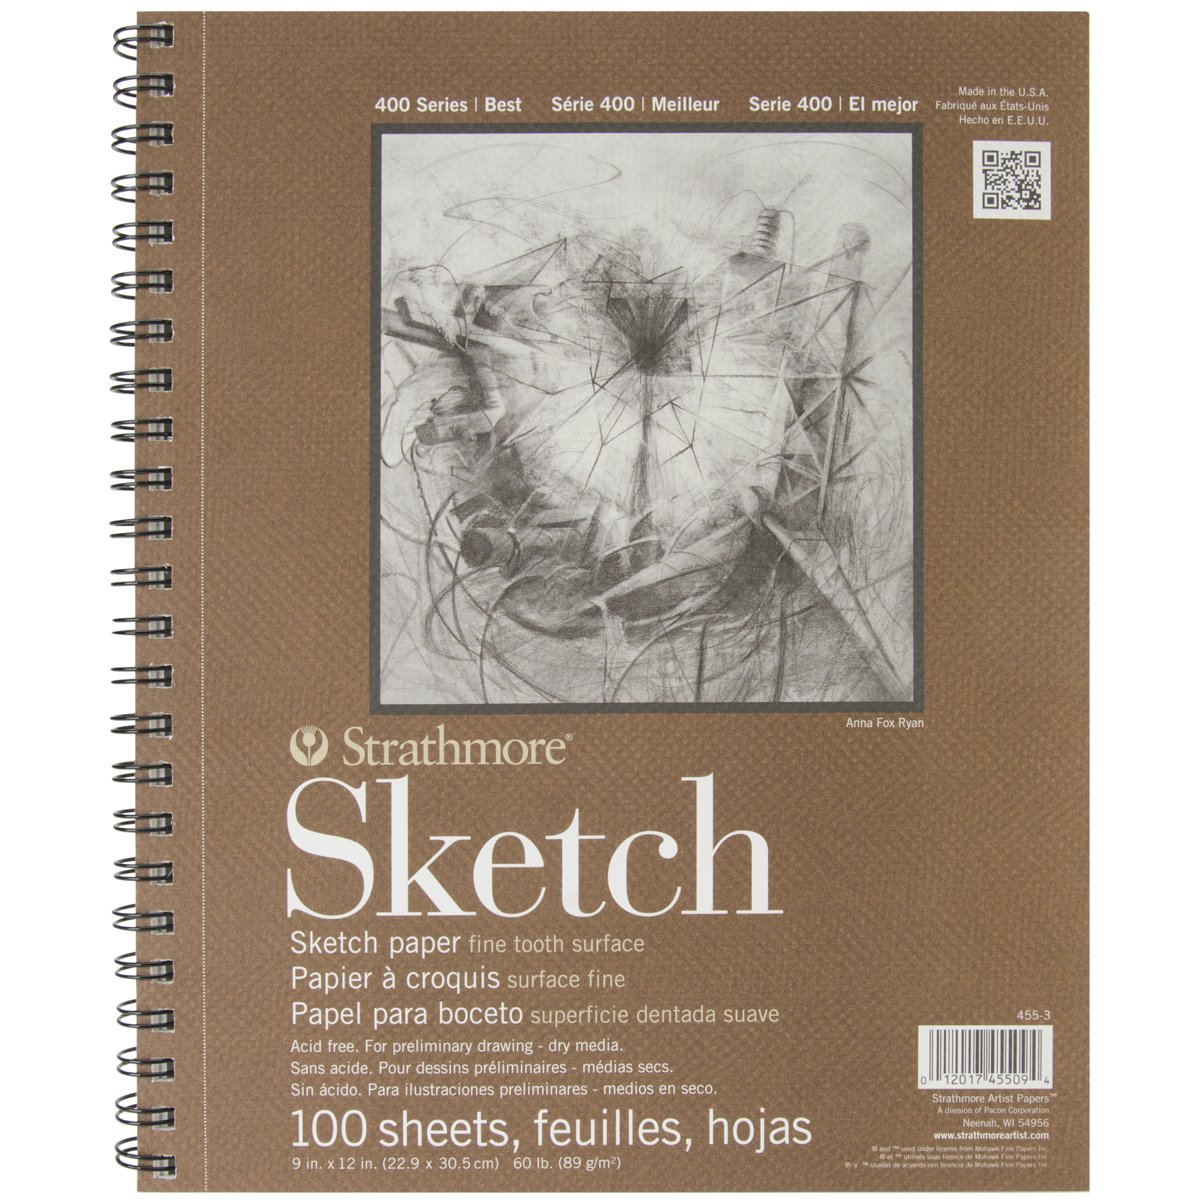 Strathmore Series 400 Sketch Pads 9 in. x 12 in. – pad of 100